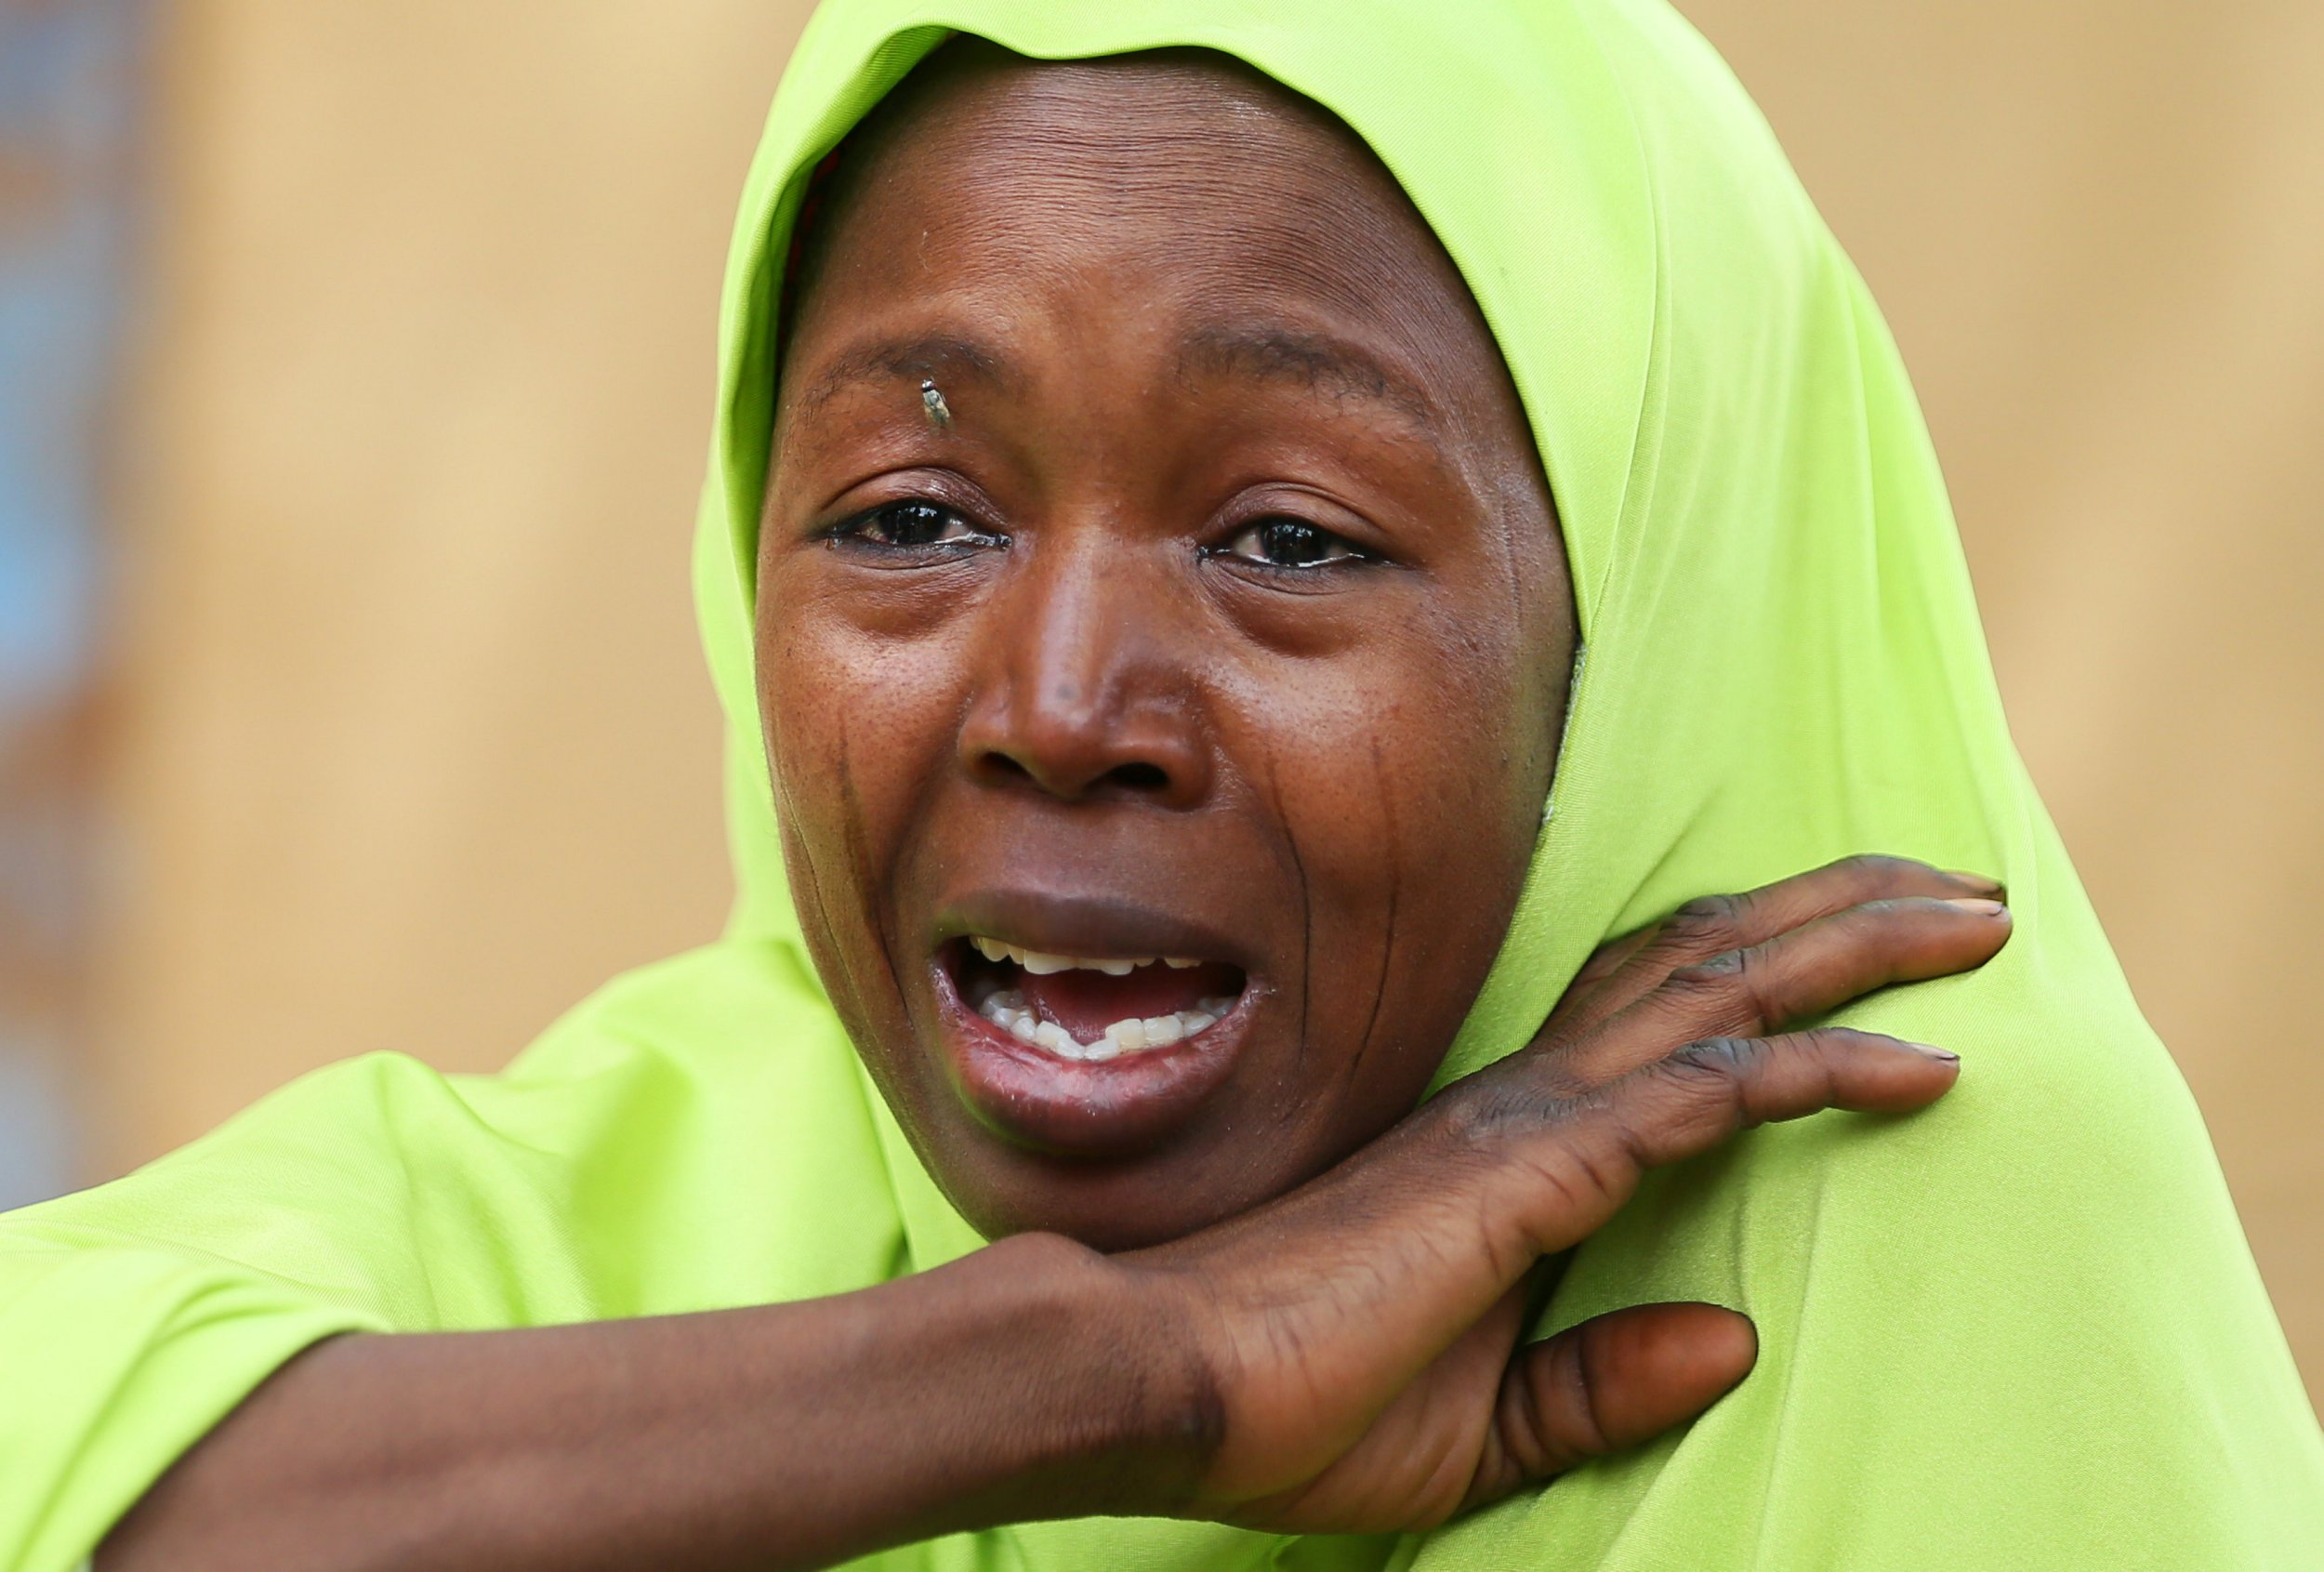 Fears more than 100 missing schoolgirls were kidnapped by Boko Haram